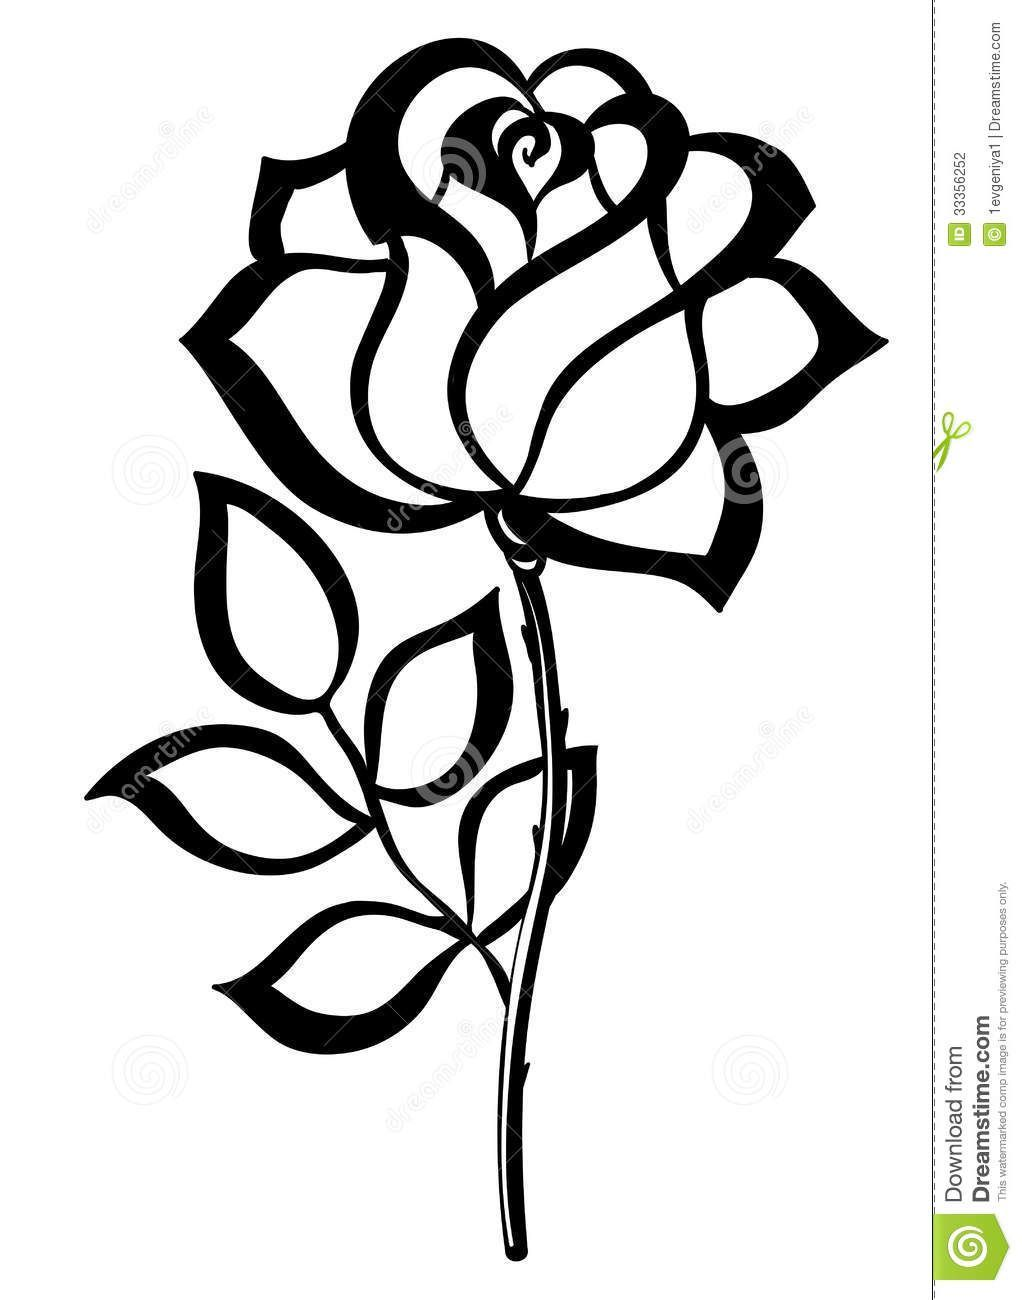 Simple rose clipart 2 » Clipart Portal.